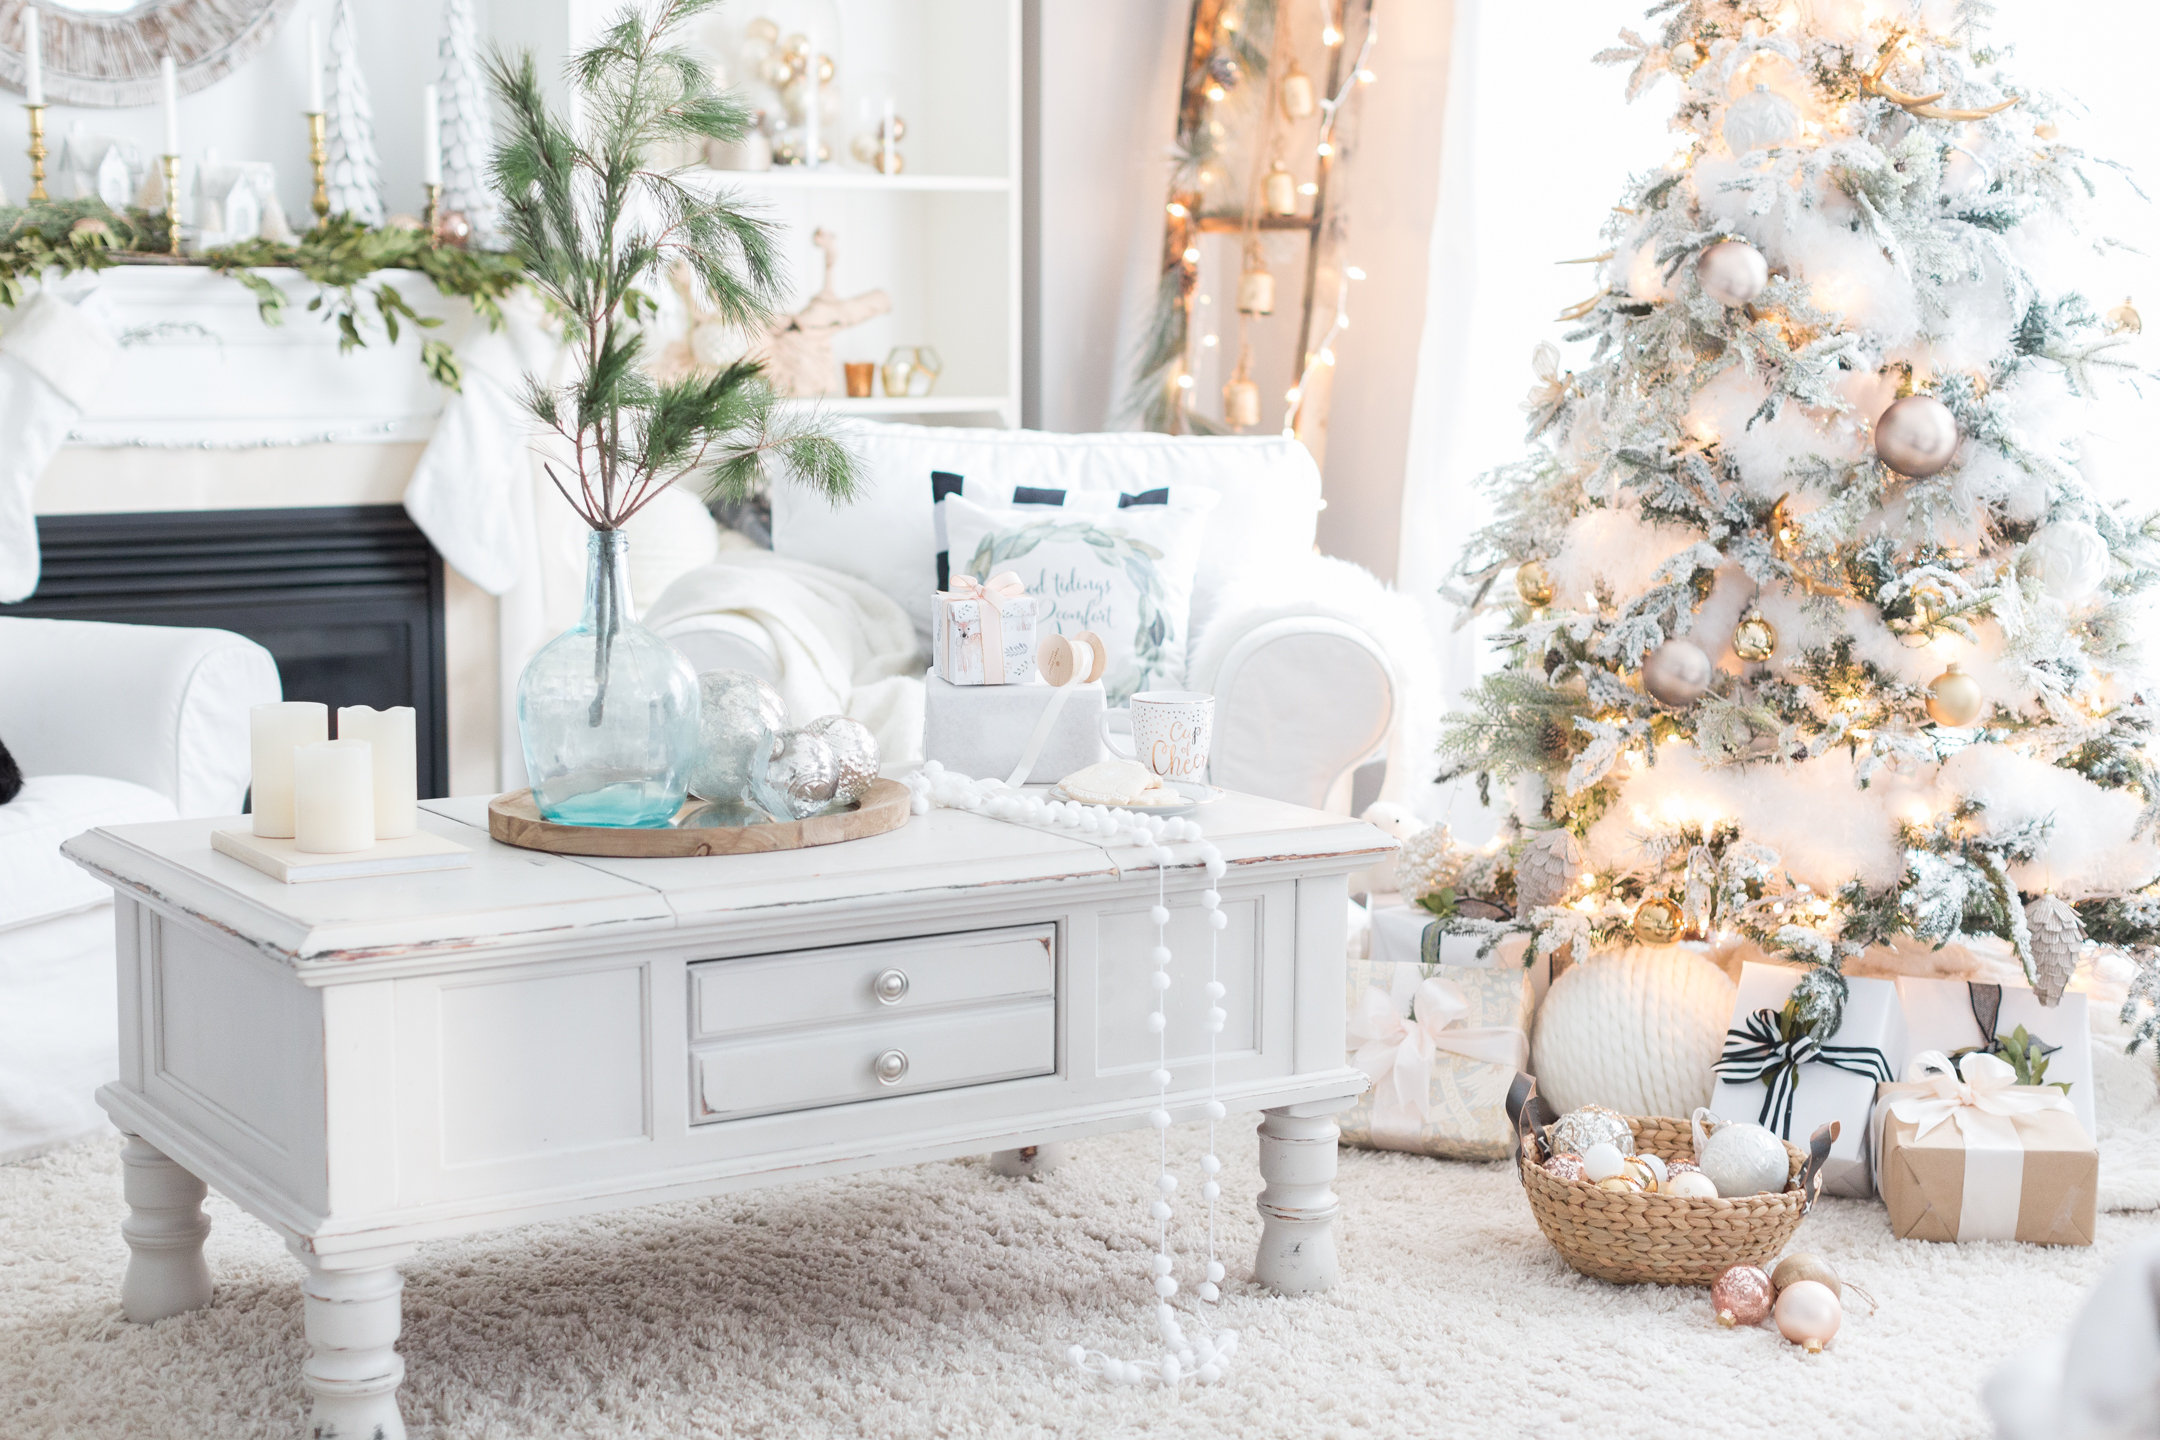 Luxury Christmas Decorations You Should be Using luxury christmas decorations Luxury Christmas Decorations You Should be Using Luxury Christmas Decorations You Should be Using 7